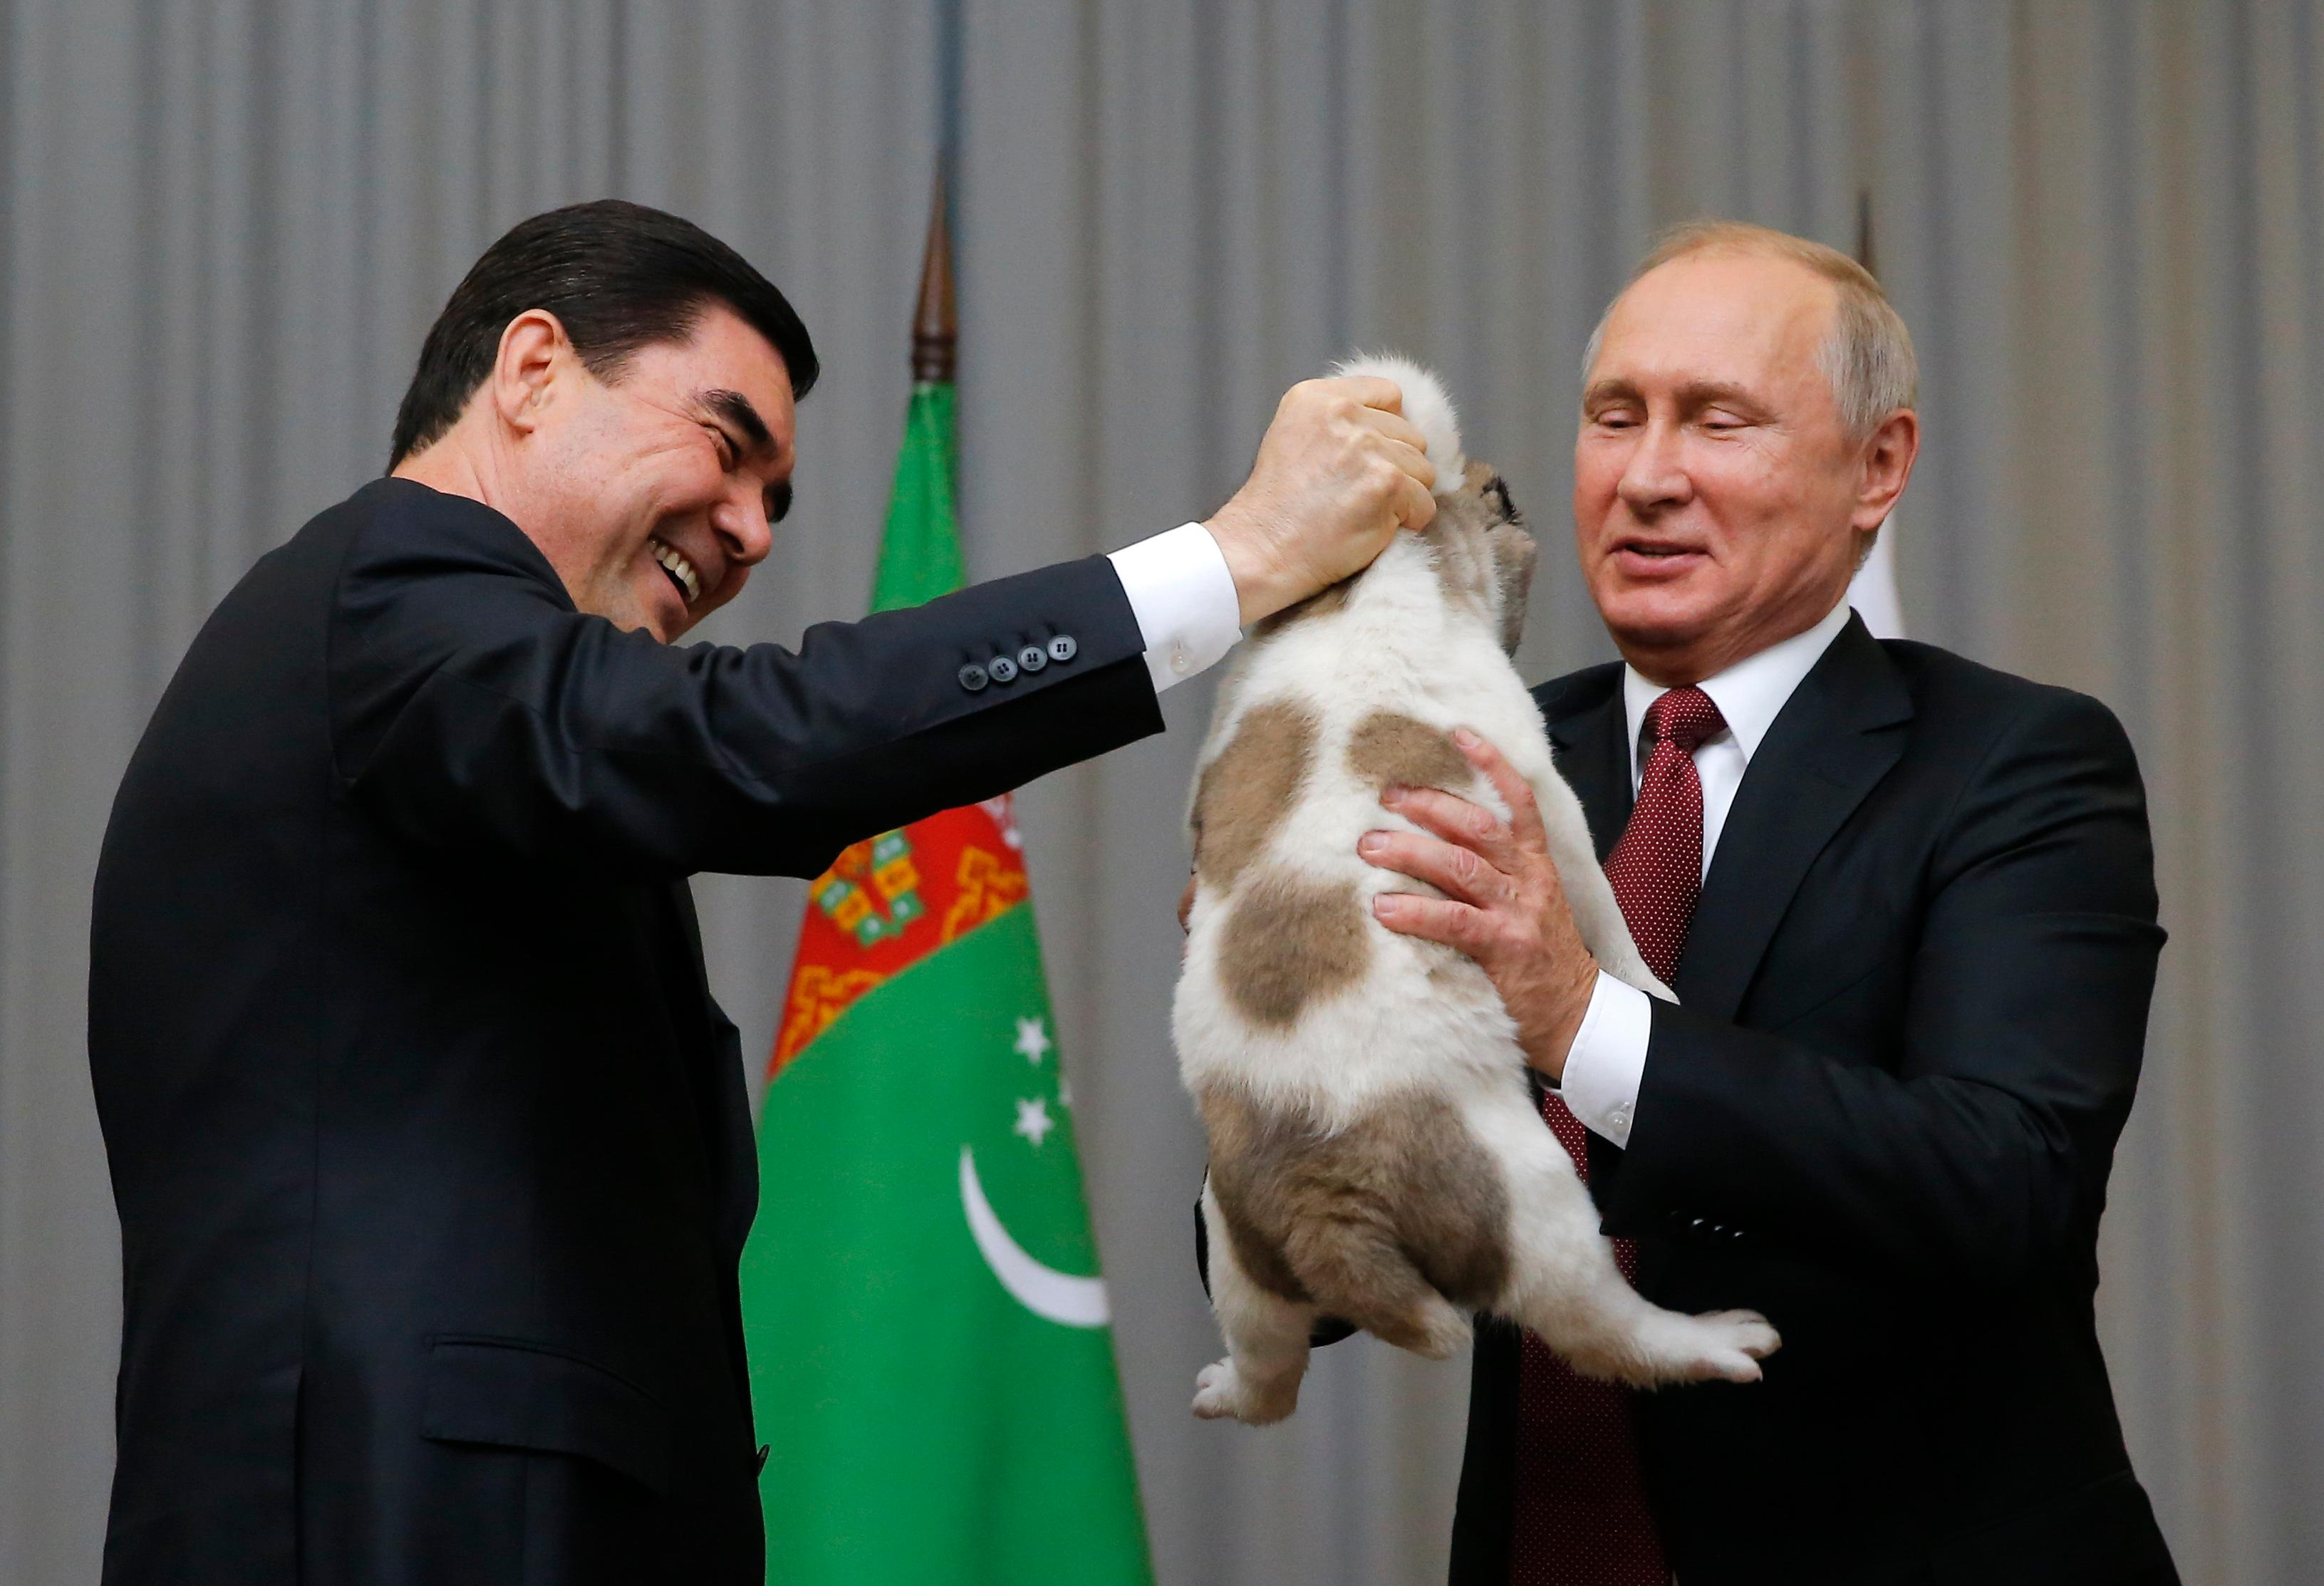 Turkmenistan's President Gurbanguly Berdymukhamedov, left, presents a puppy to Russian President Vladimir Putin during their meeting in the Bocharov Ruchei residence in the Black Sea resort of Sochi, Russia, Wednesday, Oct. 11, 2017. The presidents met at the sidelines of a summit of leaders of ex-Soviet nations in Sochi. (Maxim Shemetov, Pool Photo via AP)